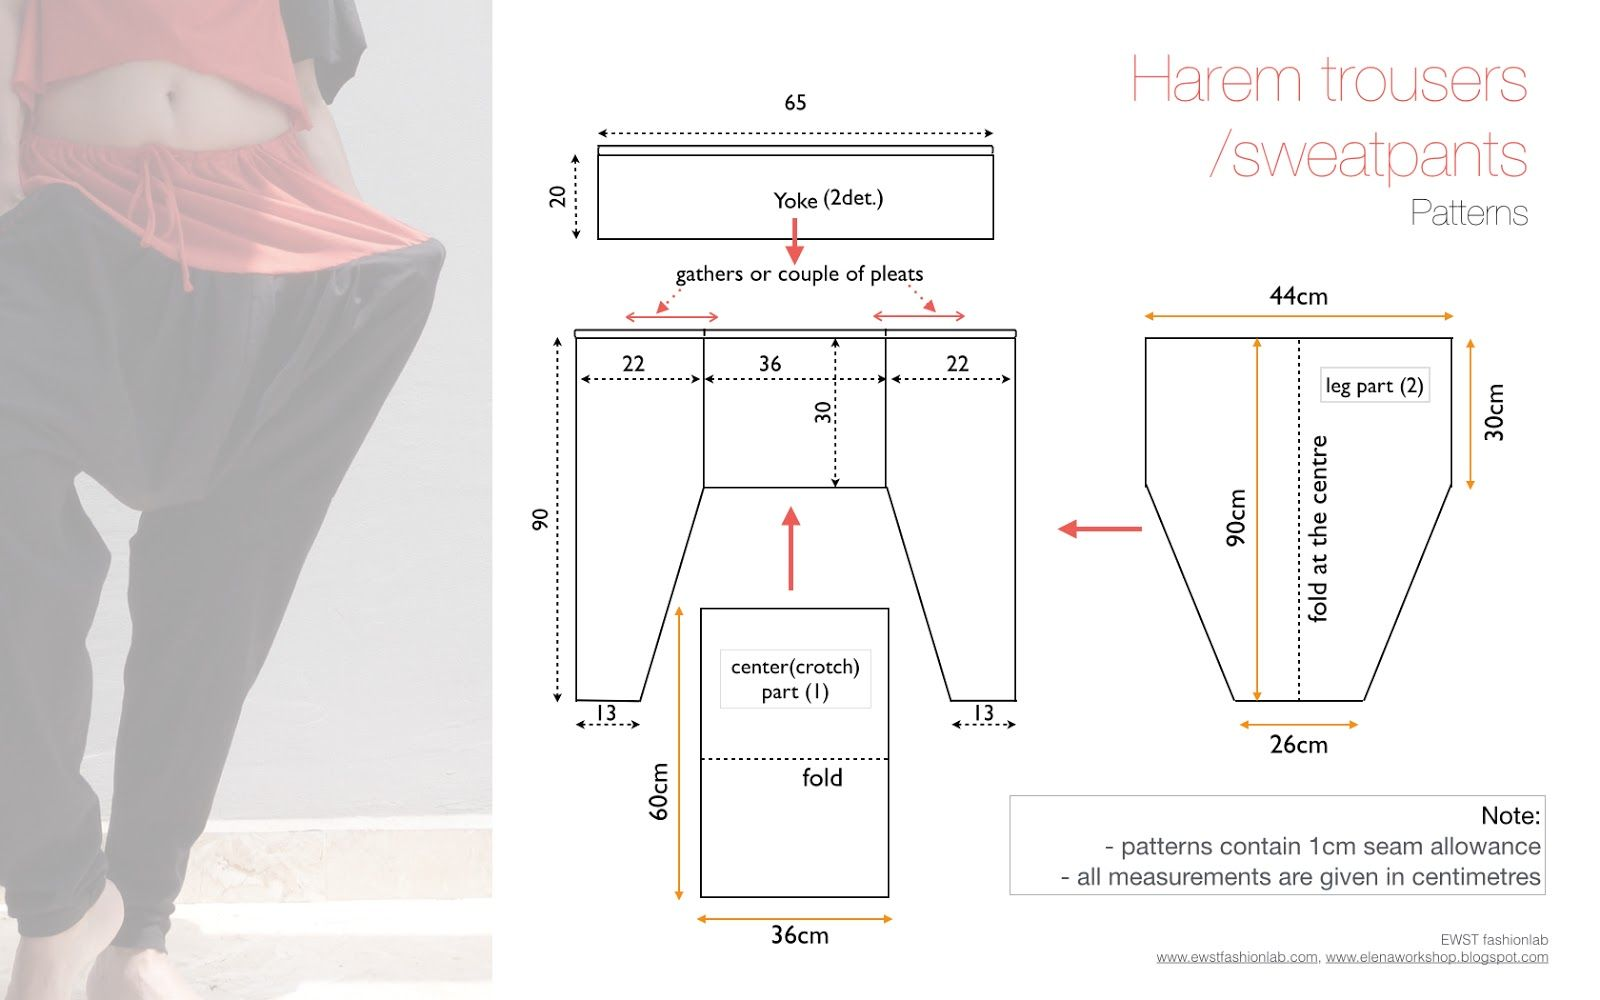 Free sewing patterns for harem trouserssweatpants. Quick